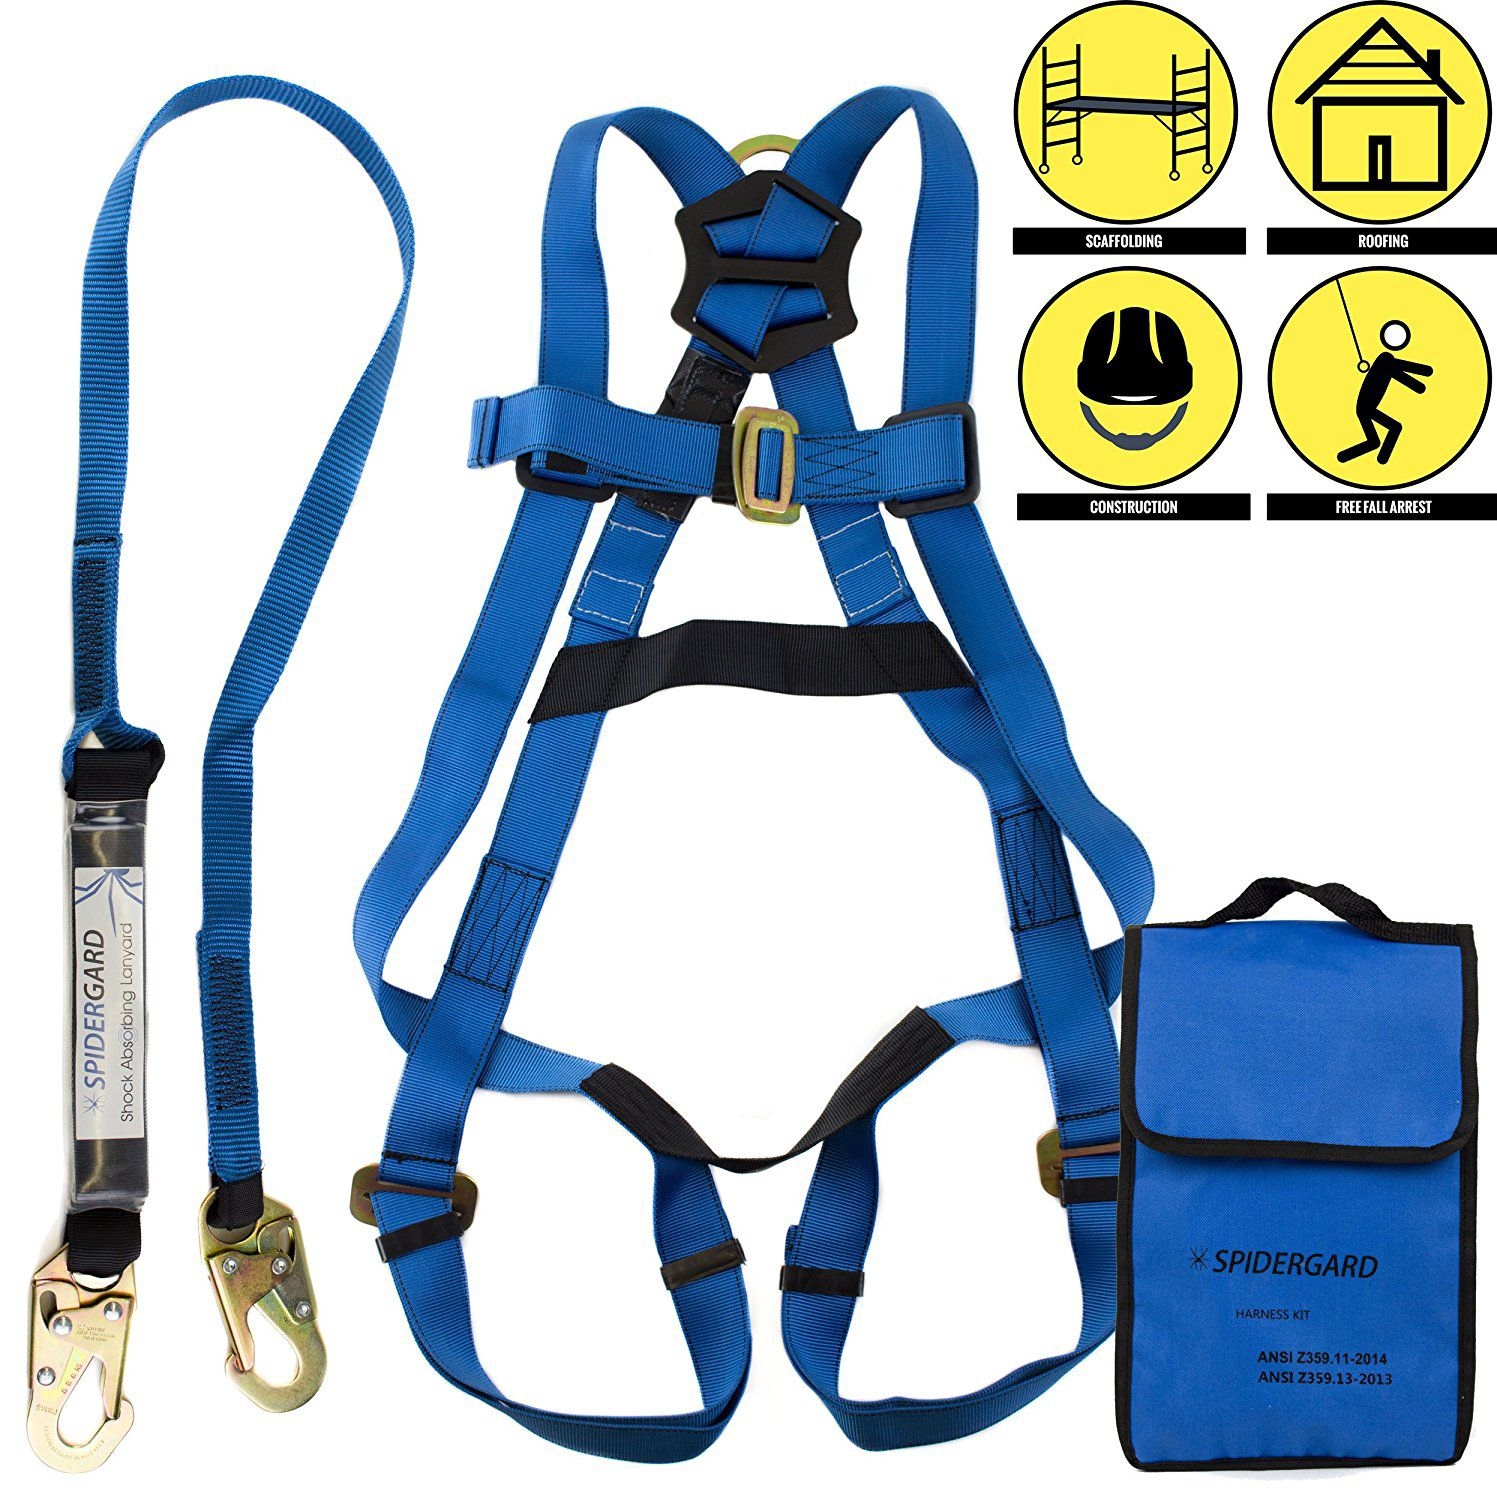 Spidergard Single D Ring Full Body Safety Harness Top 10 Best Kit